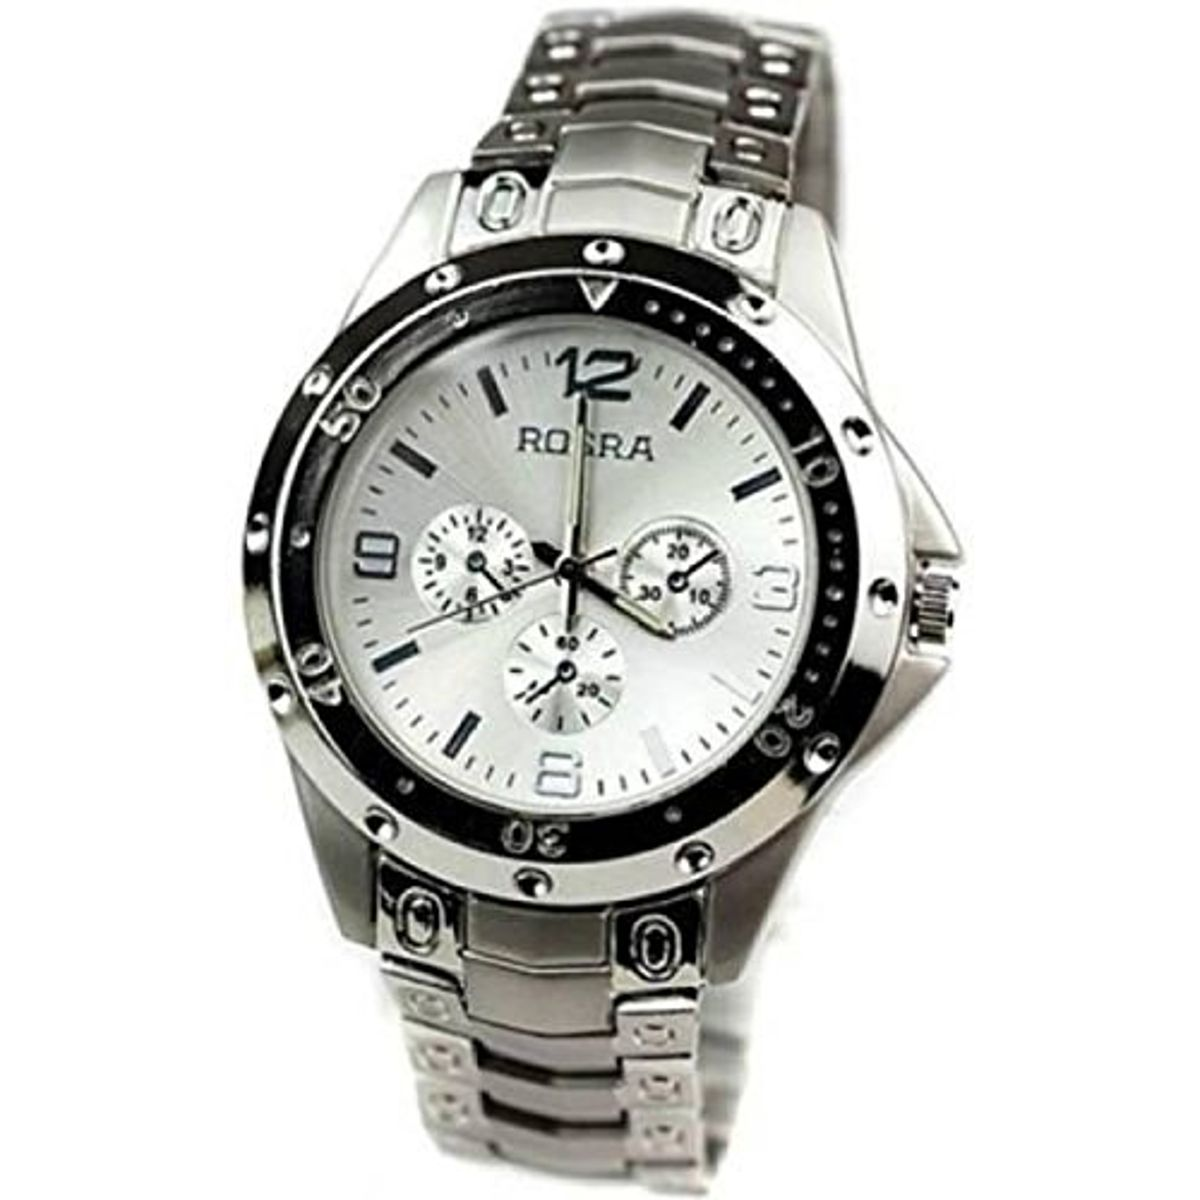 prices chrono s waterproof low shop men w countdown online fashion watches watch skmei brand for sale sport price mens digital pierce brands